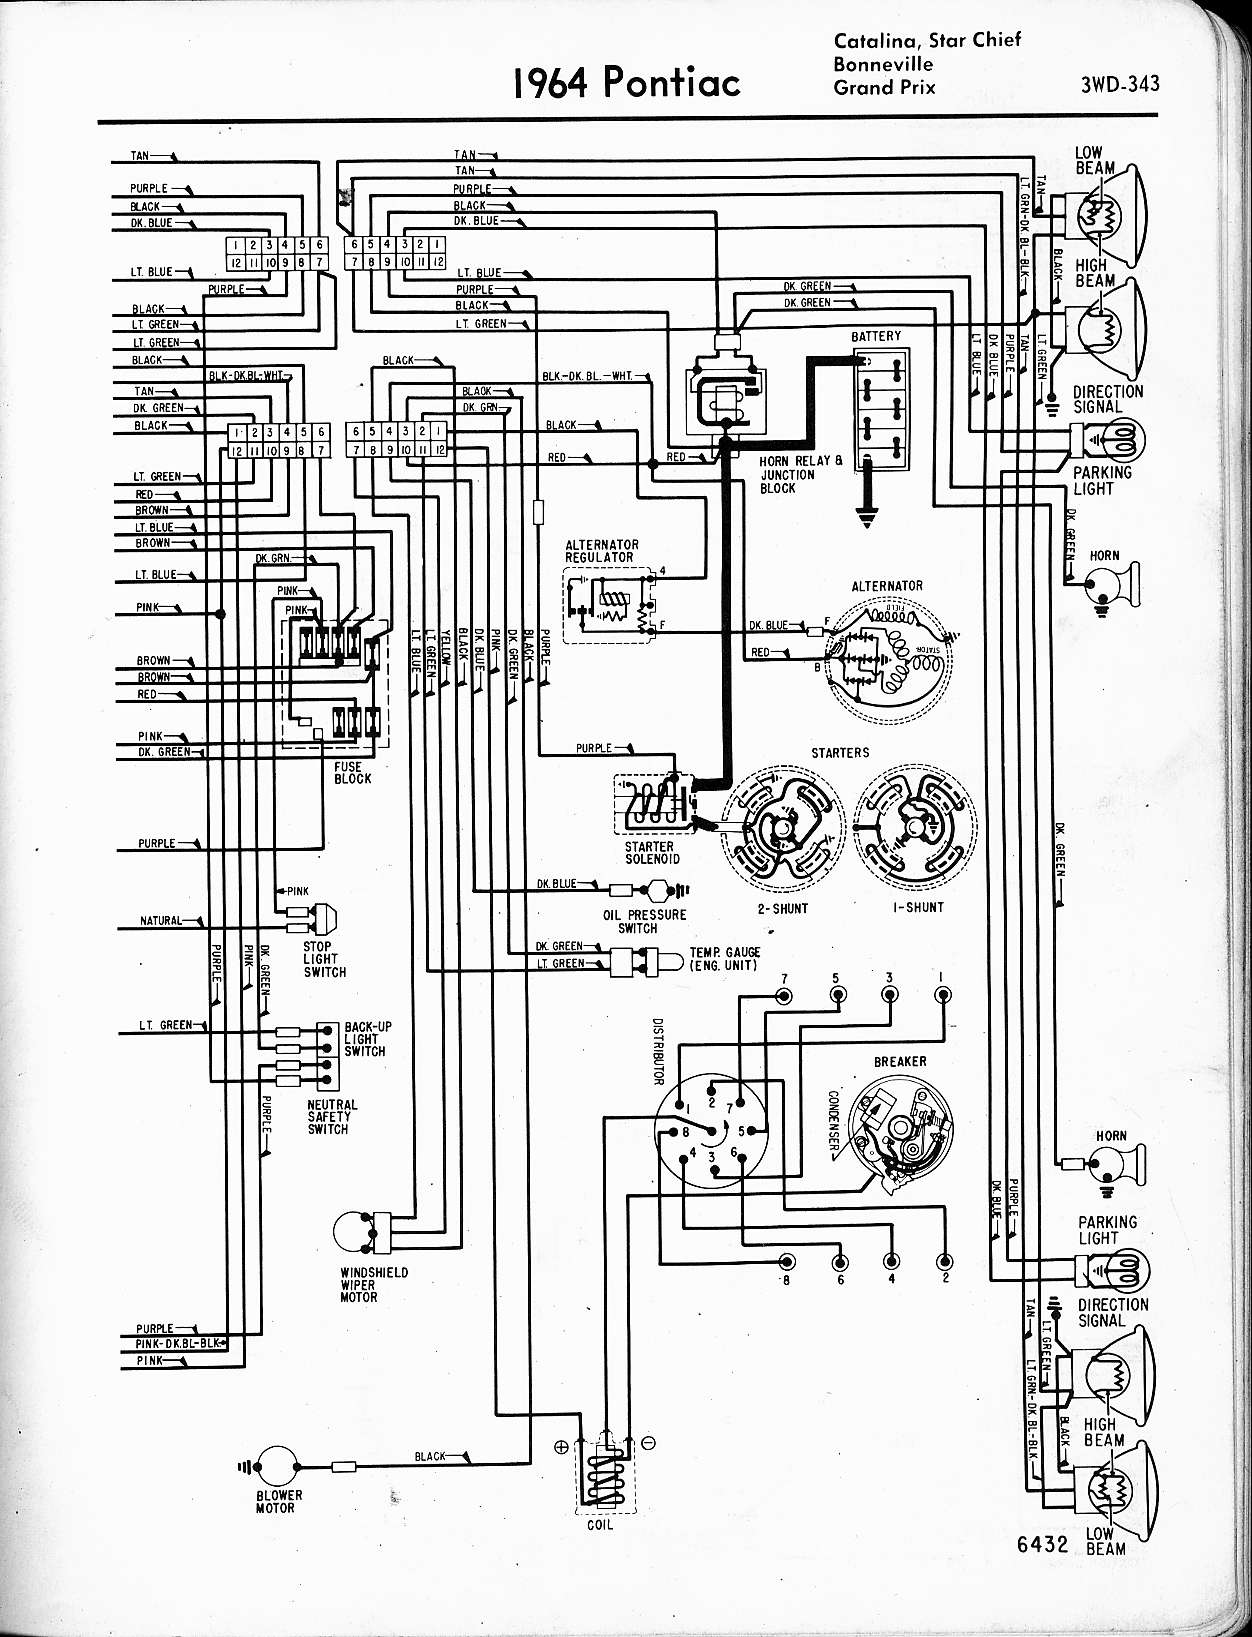 Neutral Safety Switch Wiring Diagram 71 Le Mans 1964 Plymouth Images Gallery Wallace Racing Diagrams Rh Wallaceracing Com